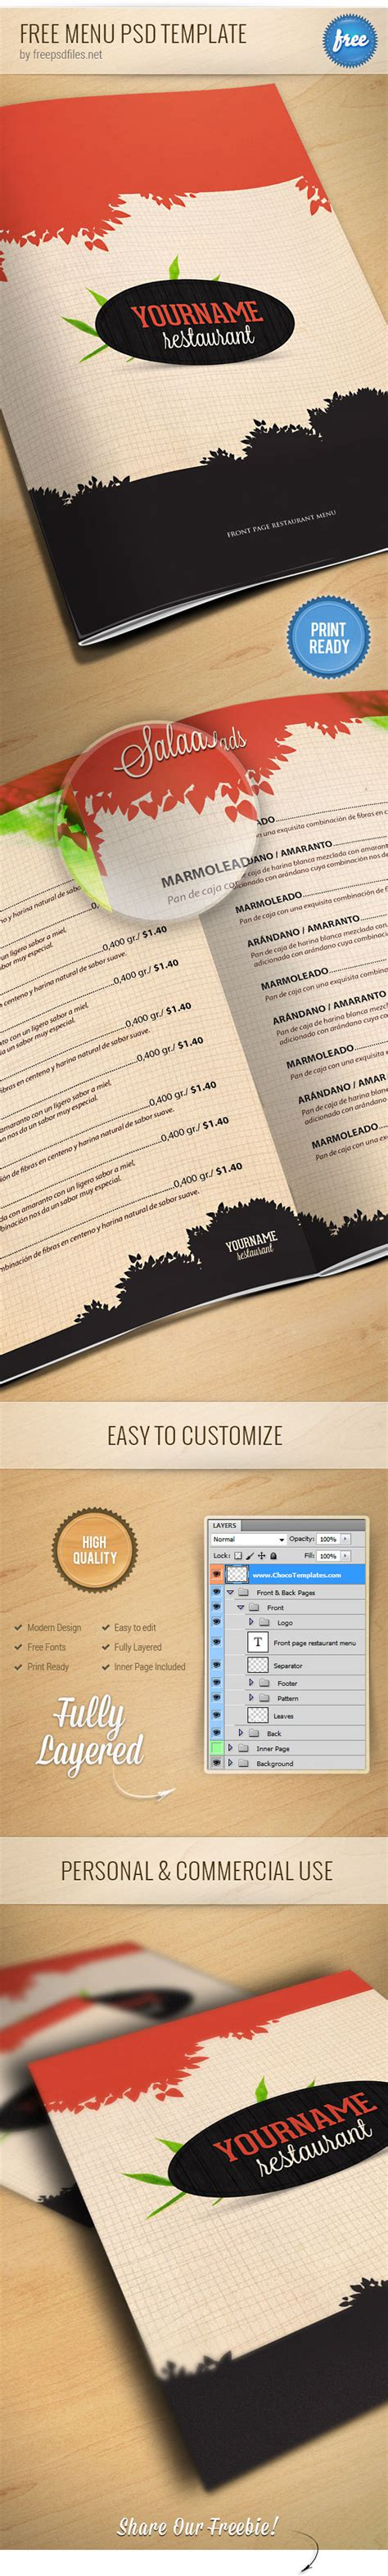 free psd menu templates restaurant menu psd template free psd files